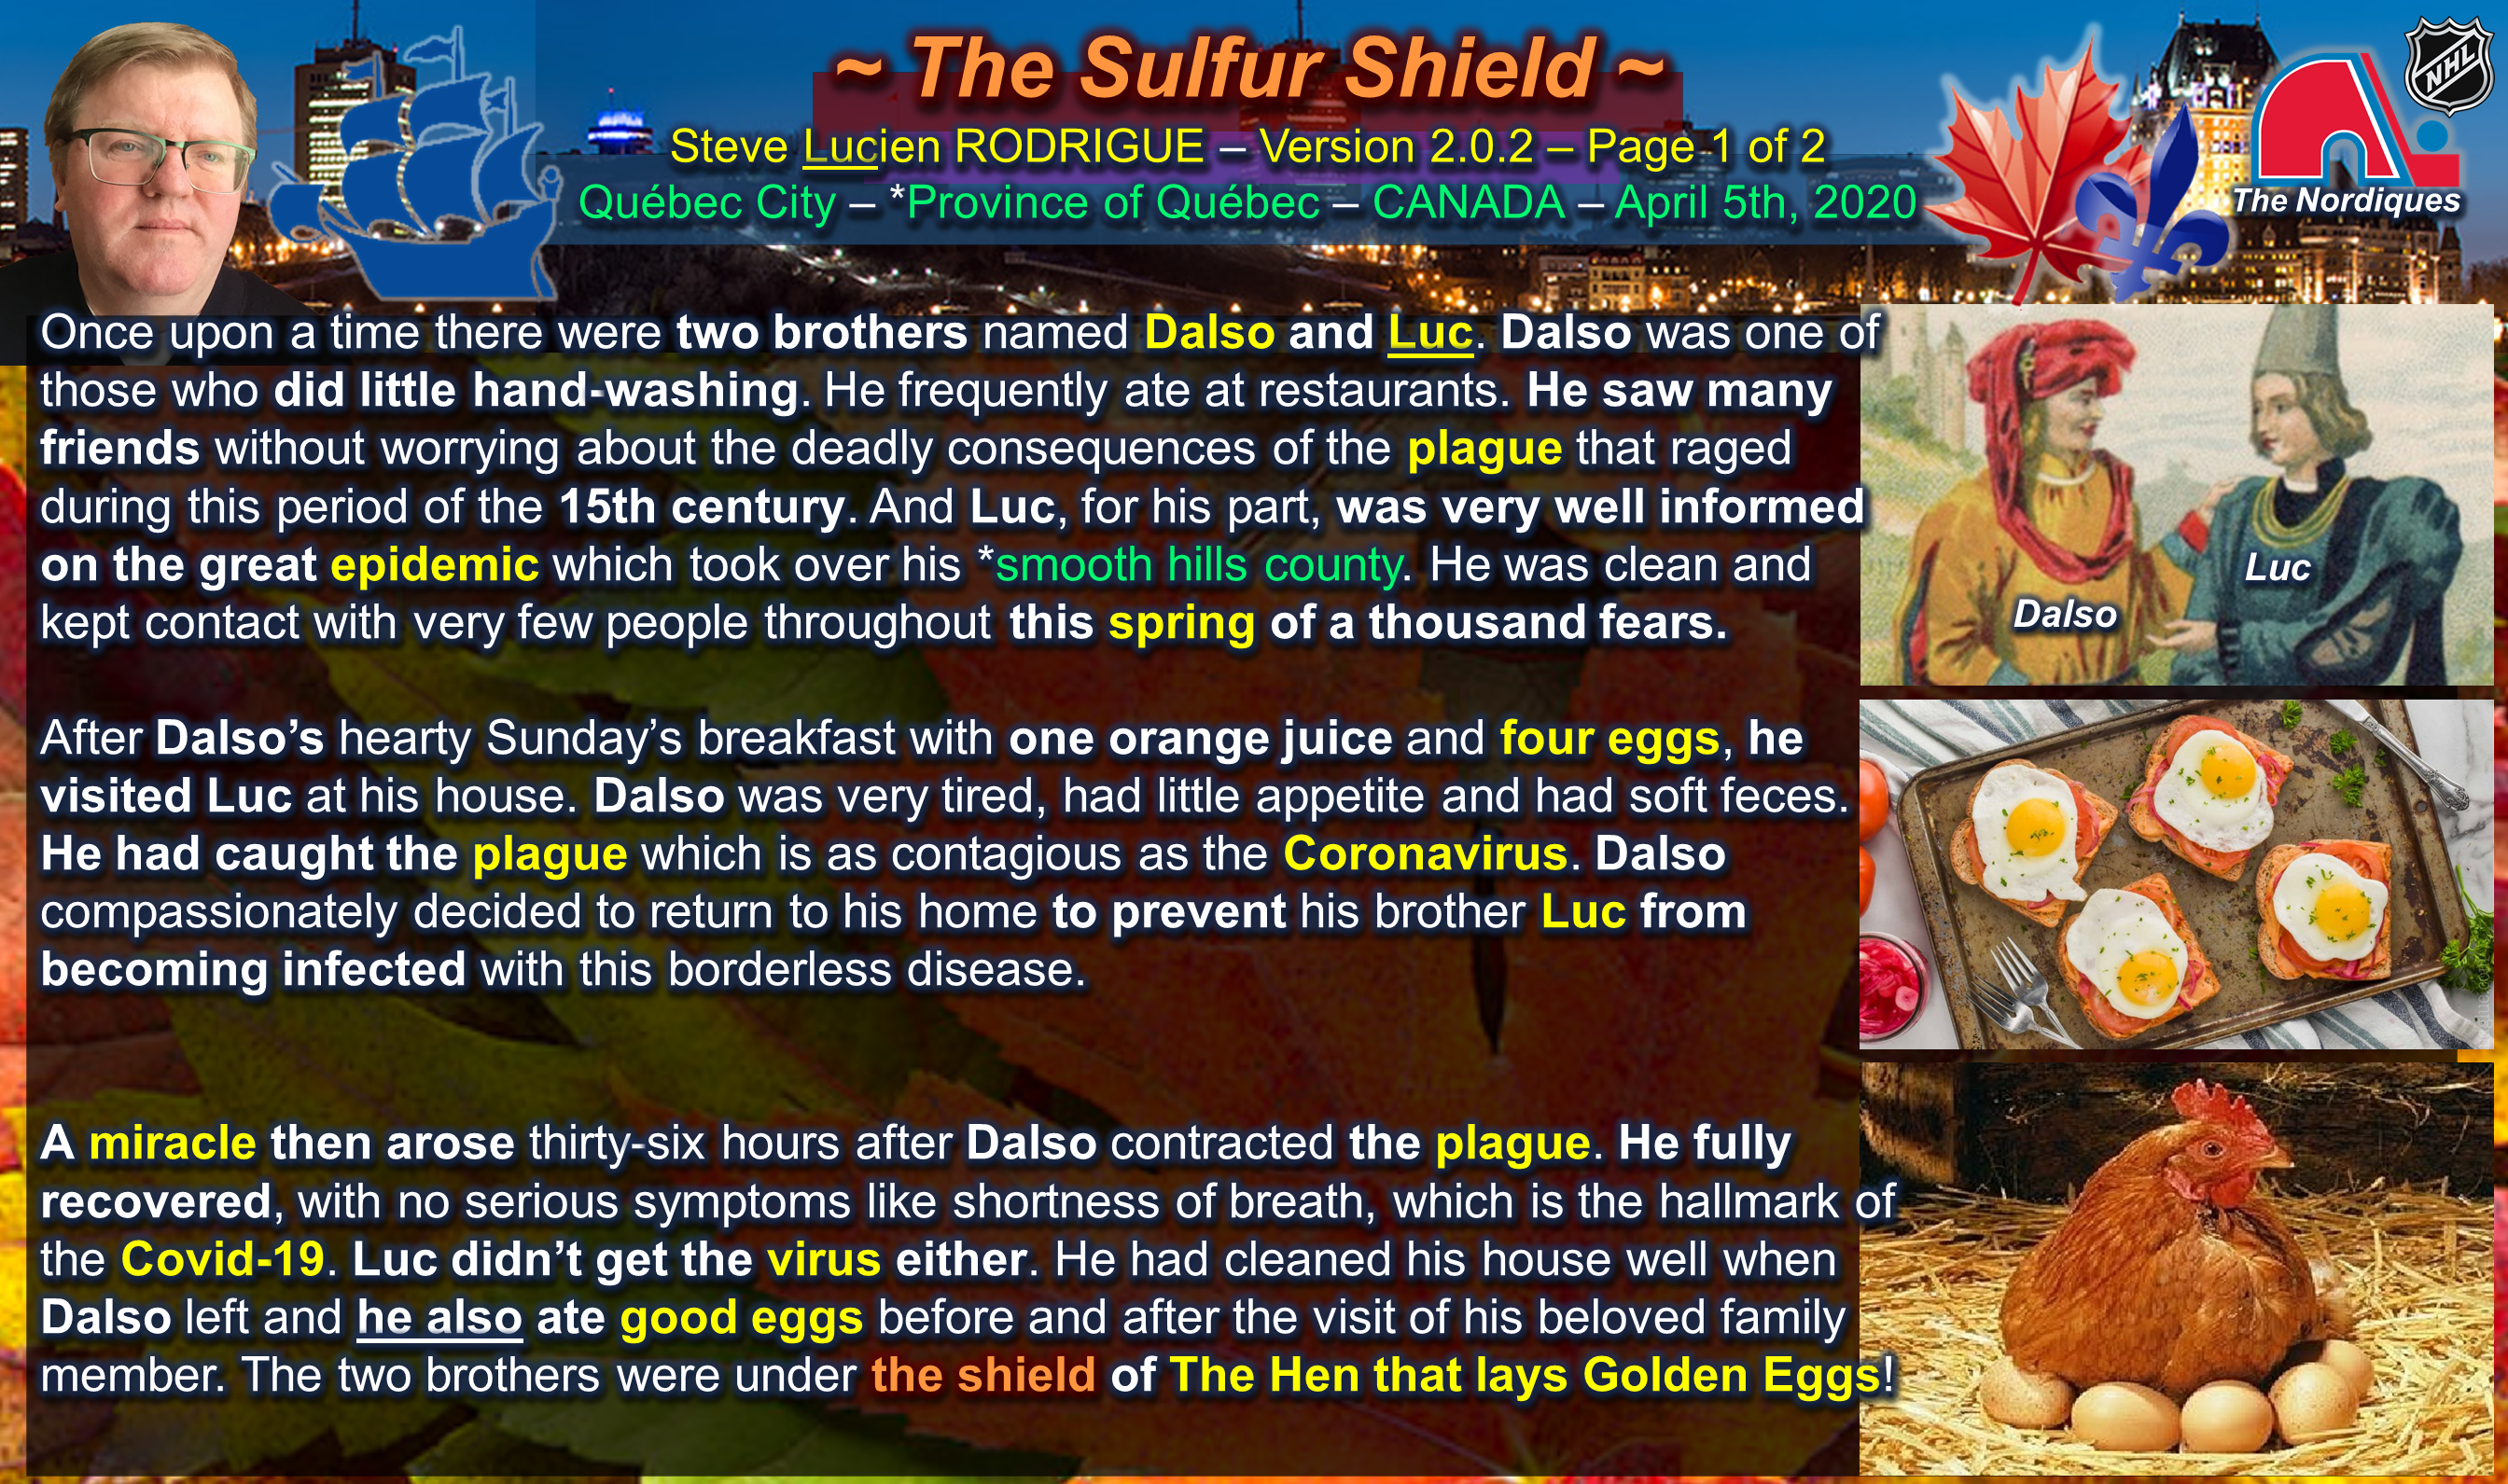 The Sulfur Shield Page 1